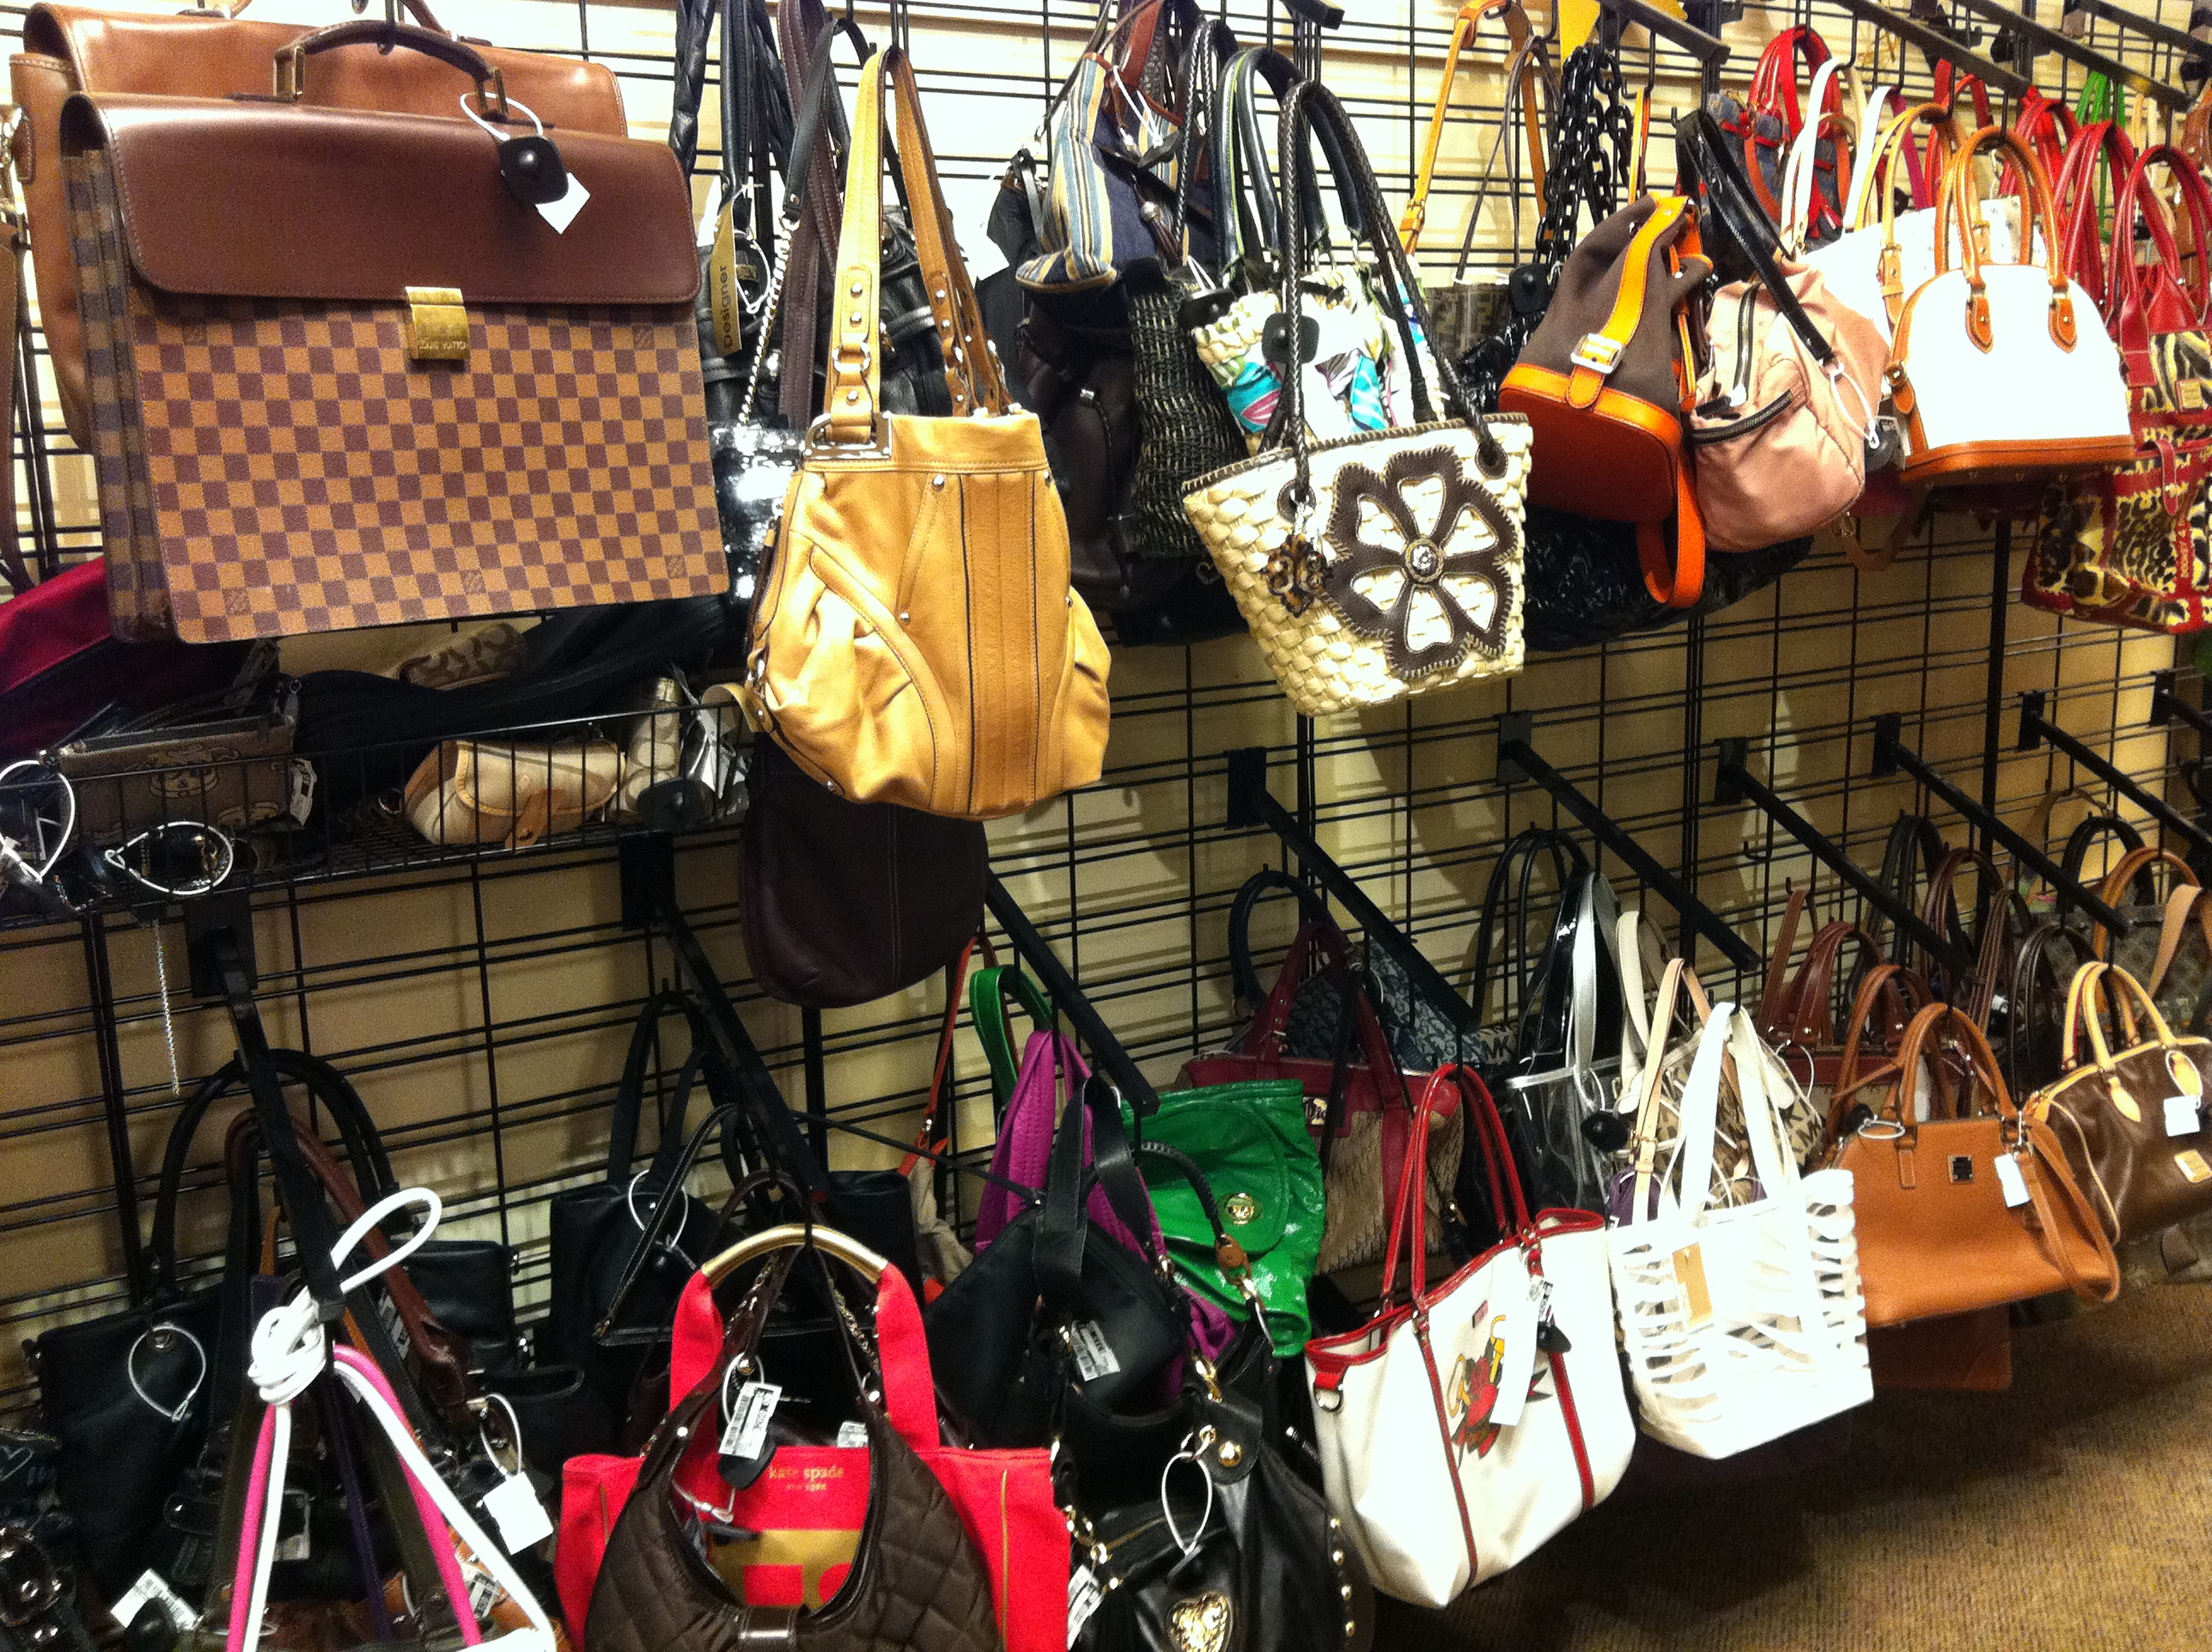 Captivating Clothes Mentor Portage, MI. The Handbag Selection Is Incredible!